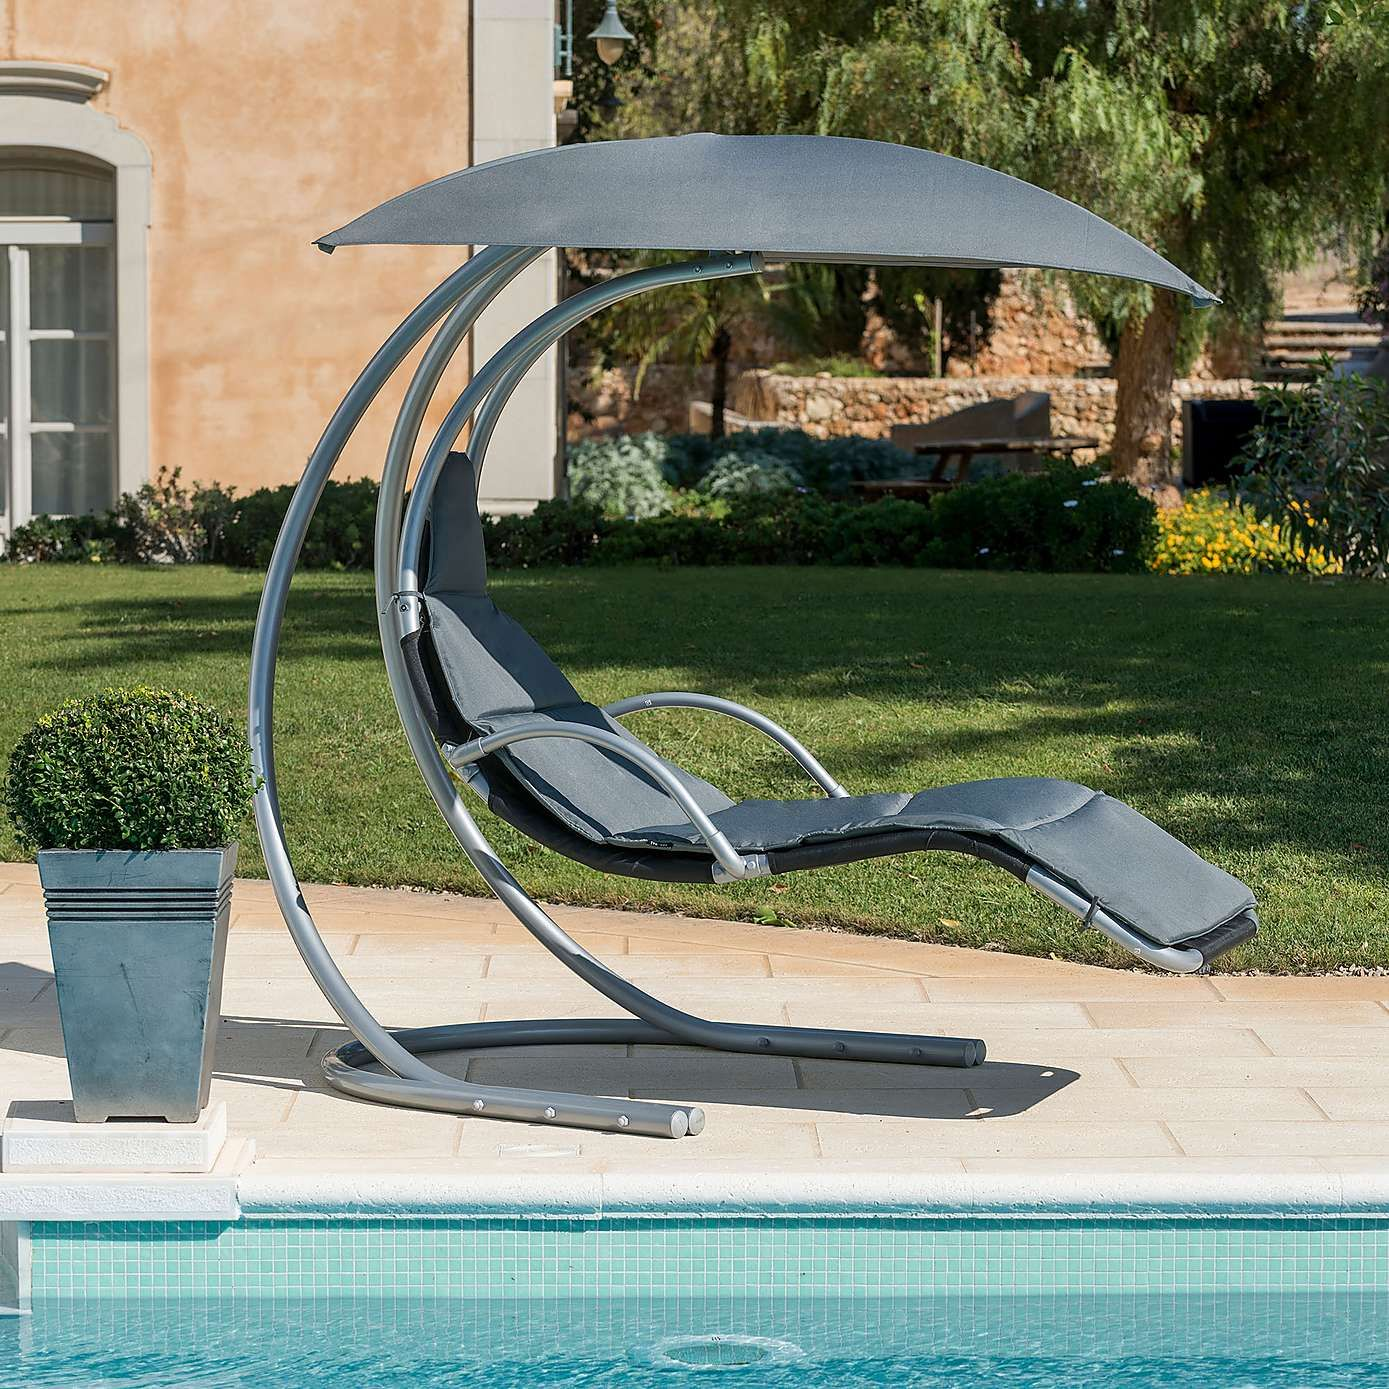 grey helicopter chair summer outdoor lounger - Garden Furniture Loungers